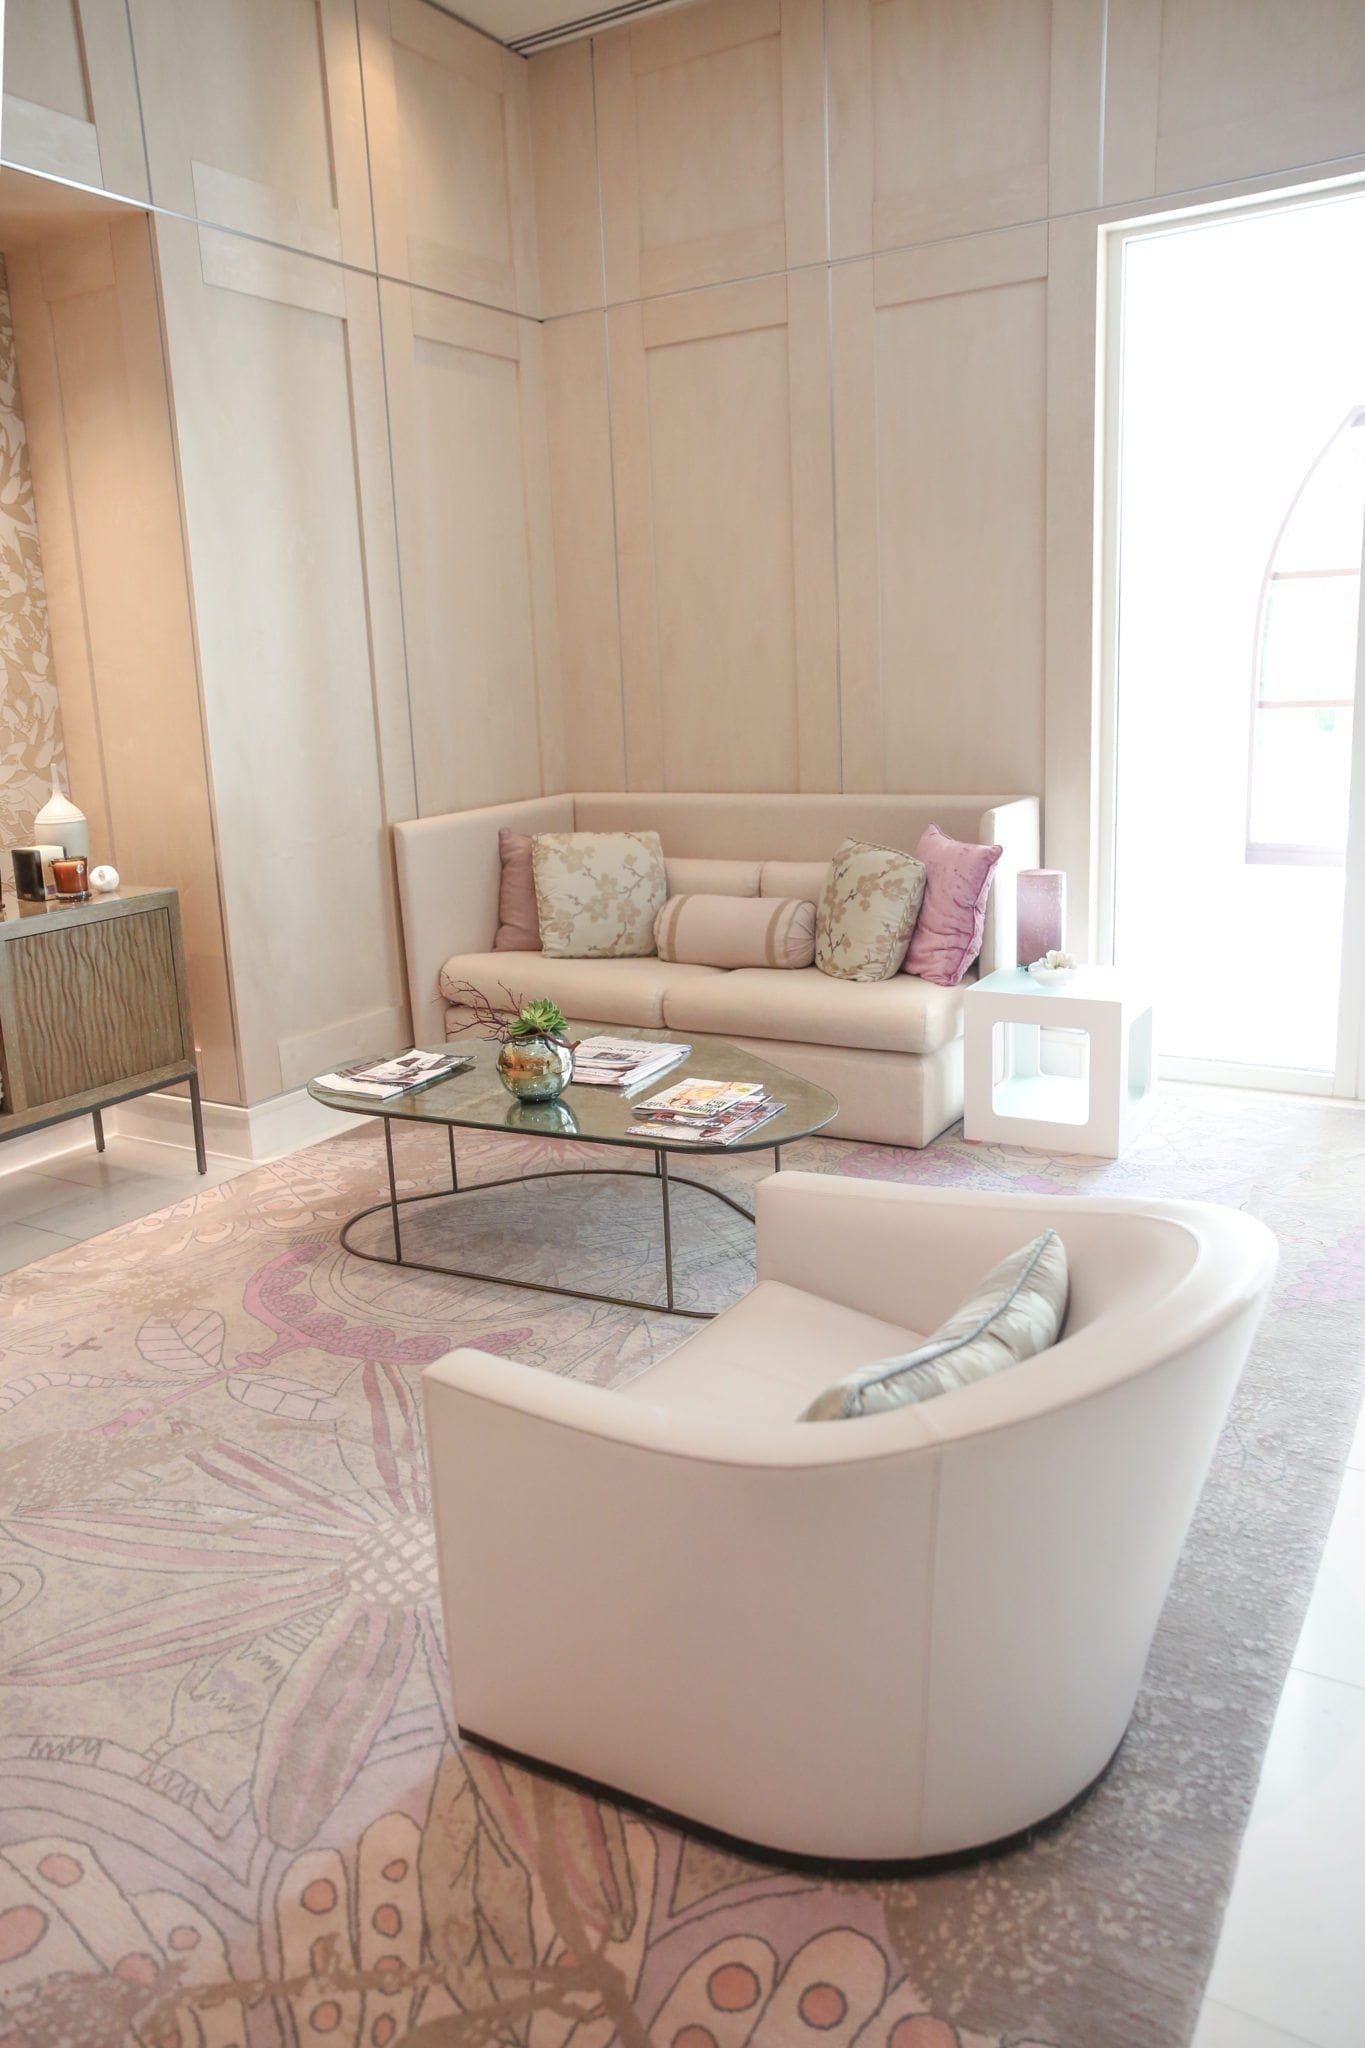 Four seasons spa with pink couch and antique mirror coffee table with pink throw pillows